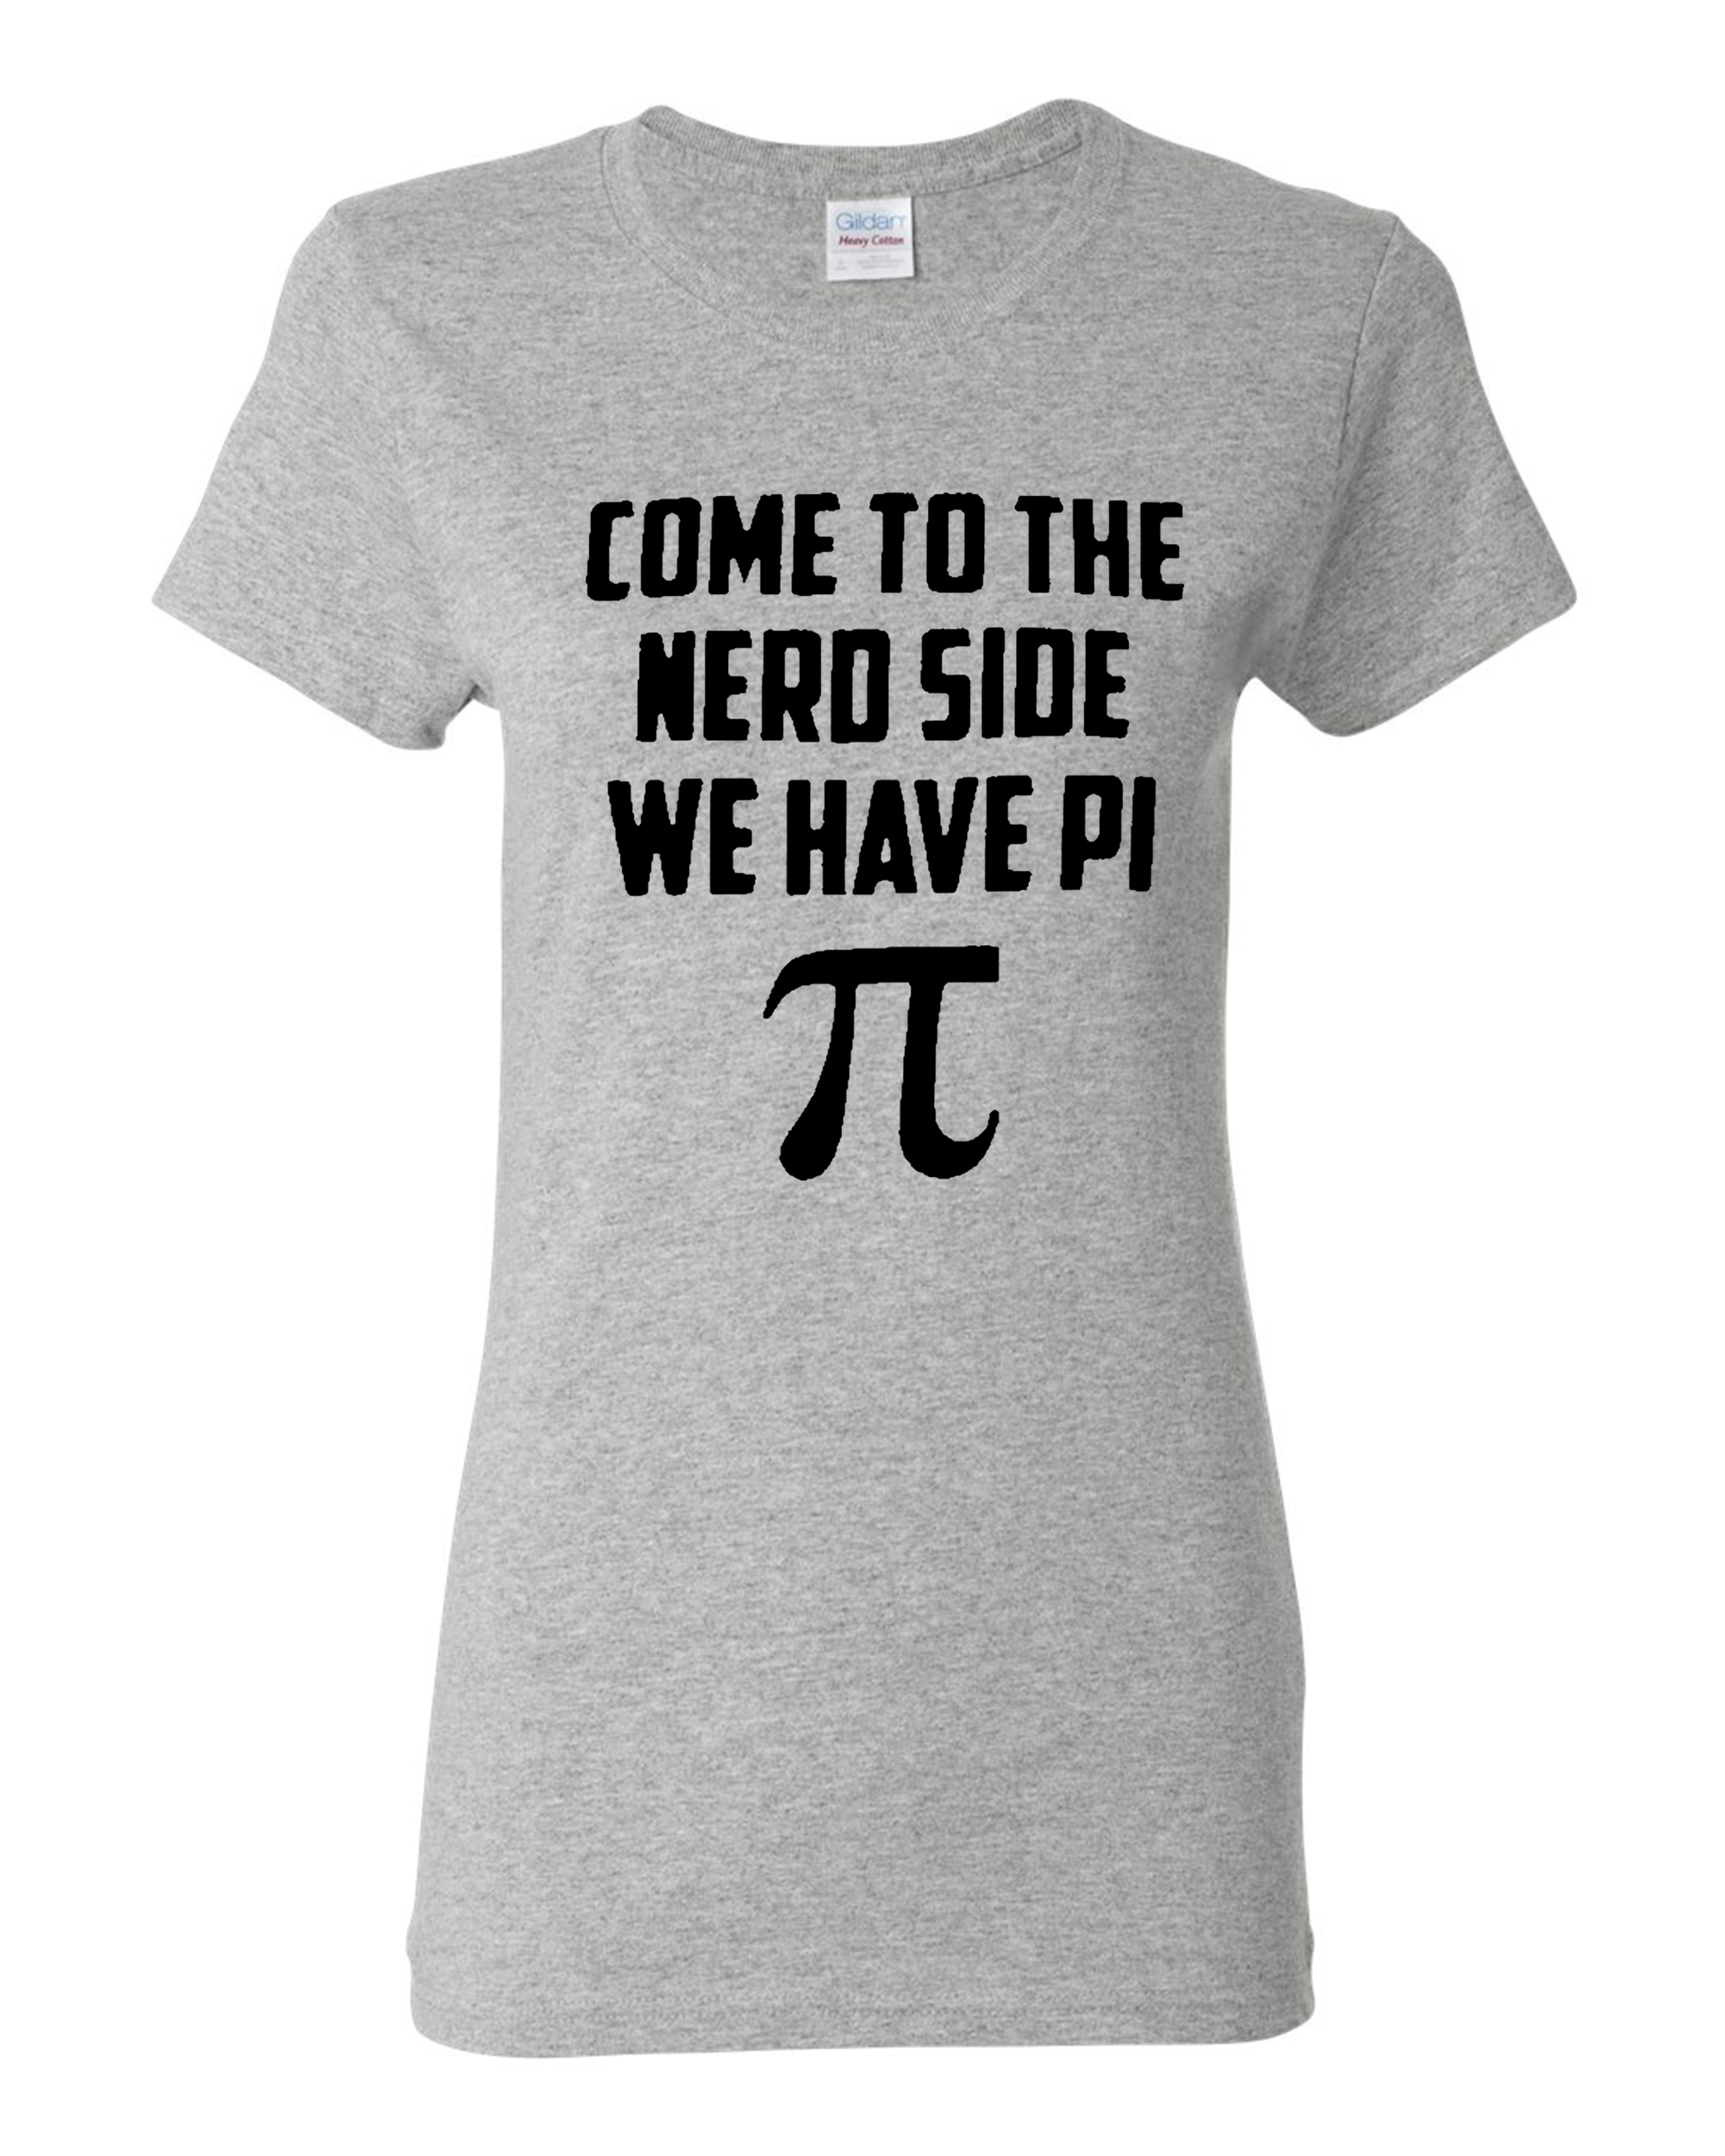 XL COME TO THE NERD SIDE WE HAVE PI Kids Tee Shirt Pick Size /& Color 2T